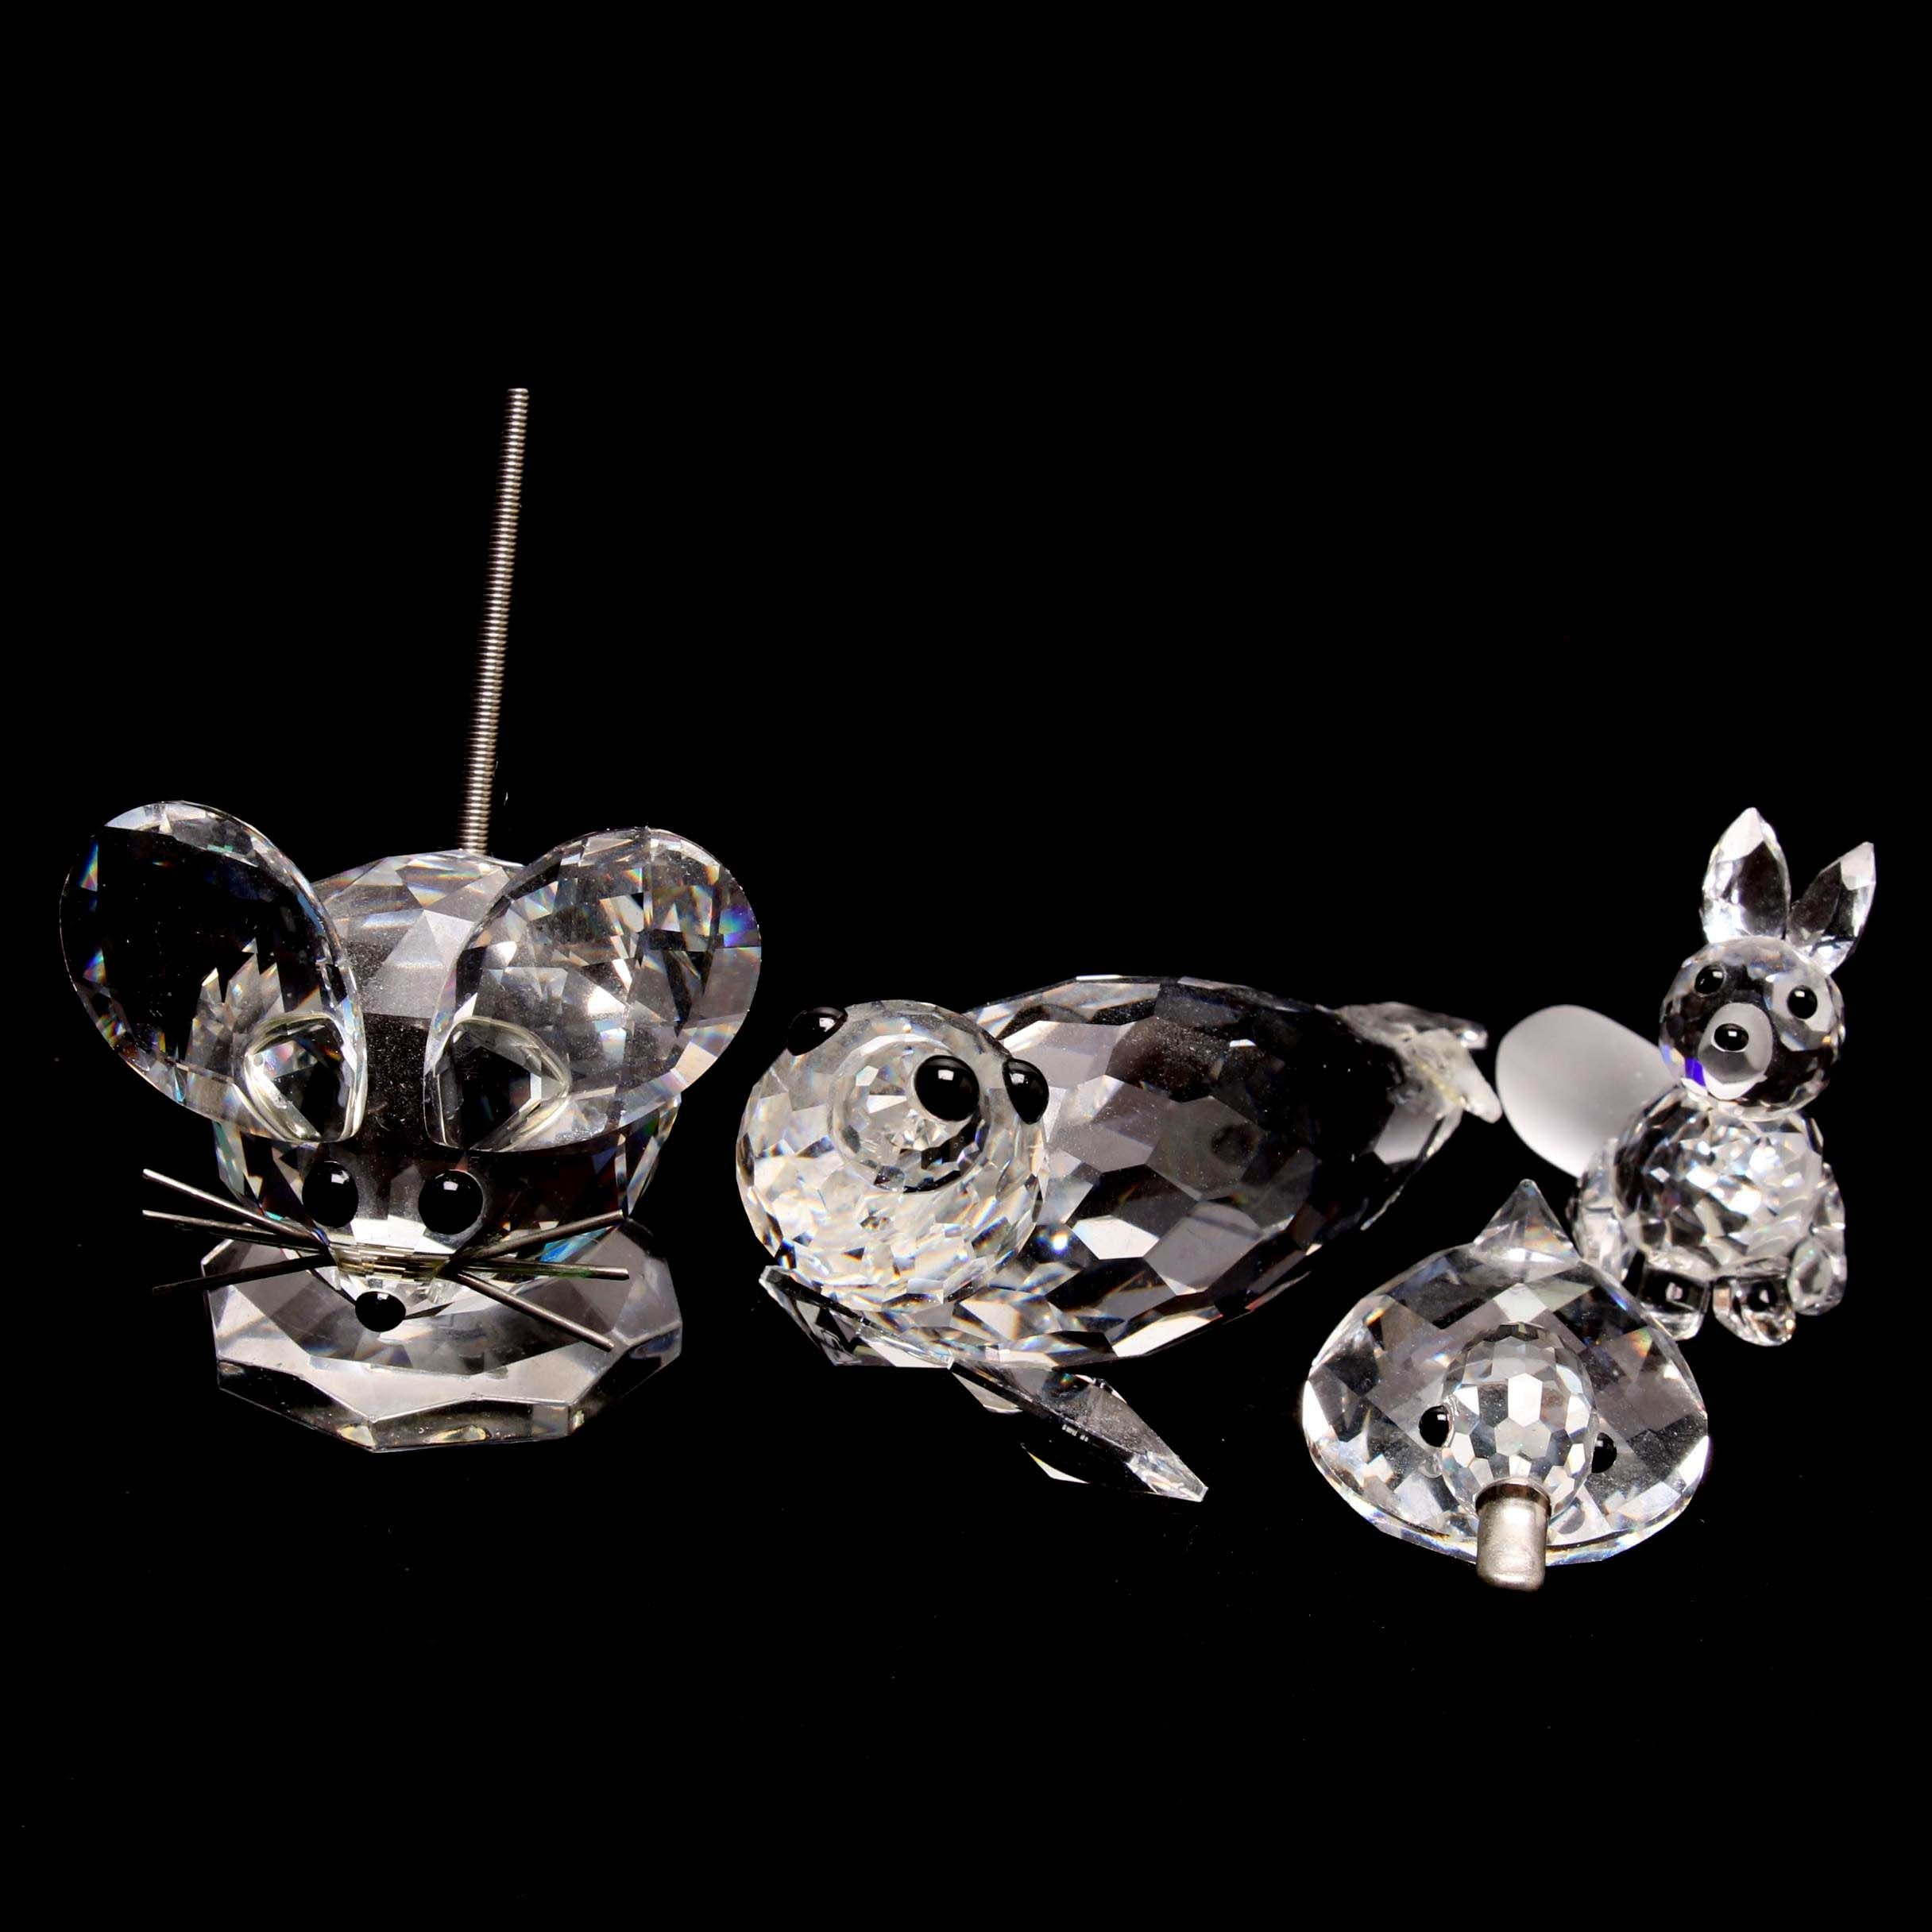 Swarovski Crystal Miniature Animal Figurines